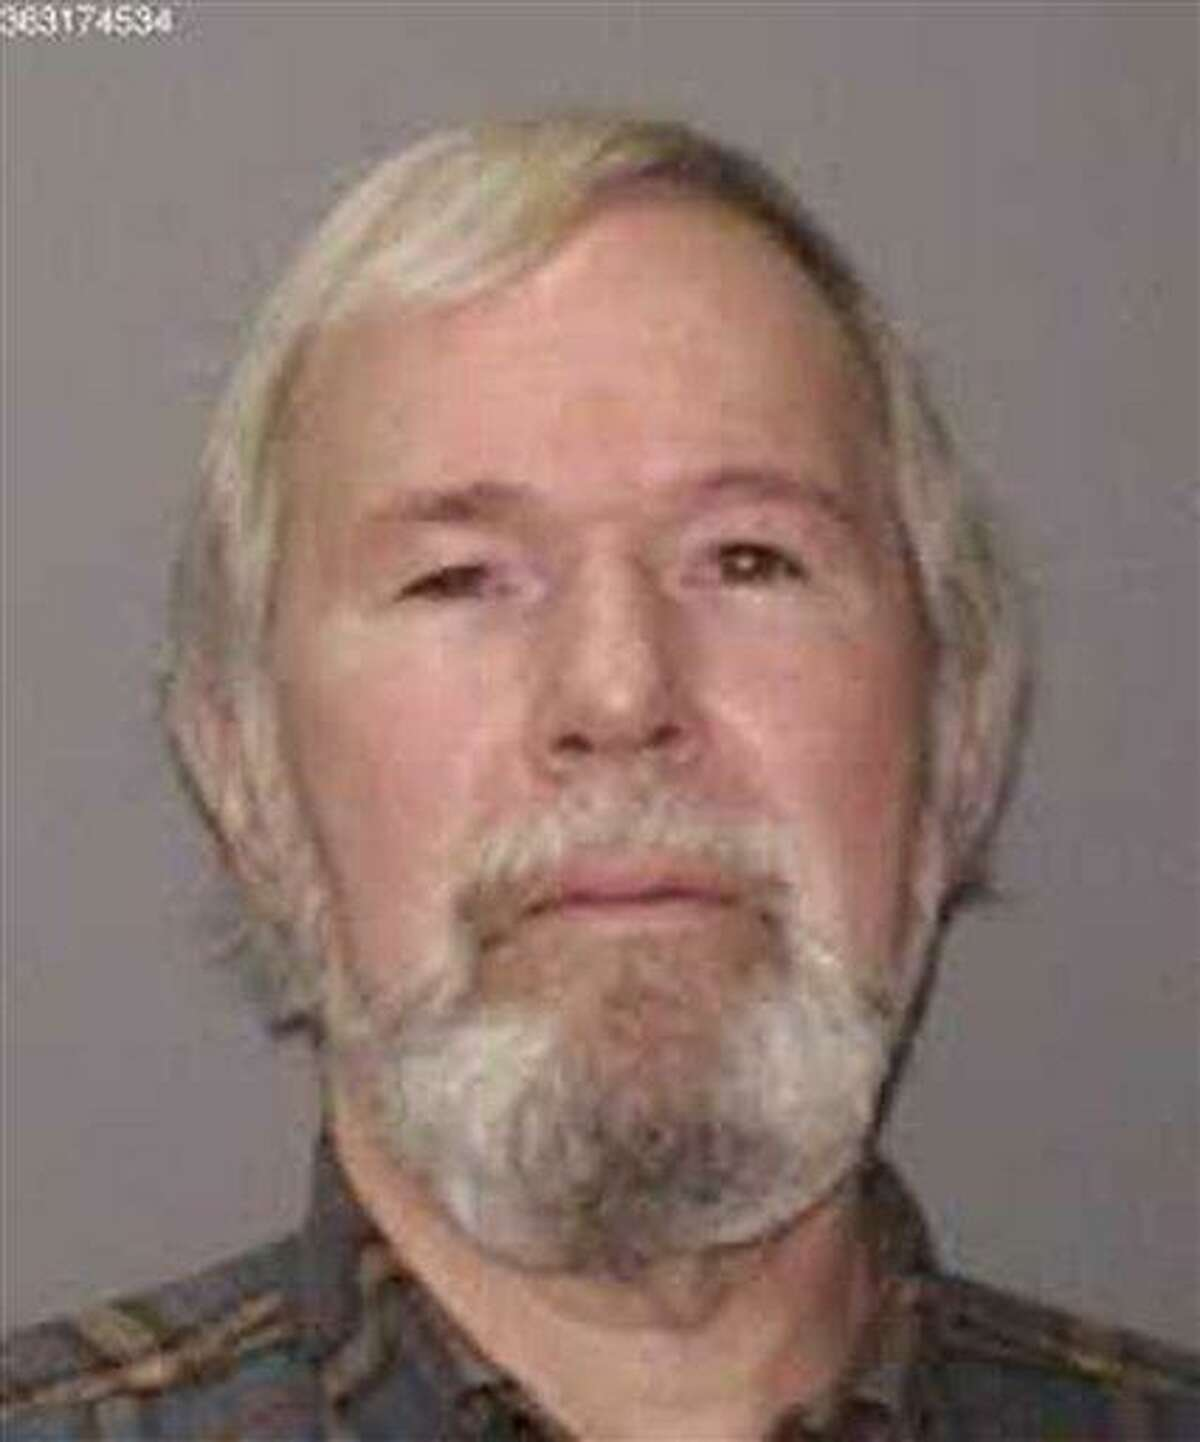 This undated photo provided by the New York State Police shows Kurt R. Meyers. (Associated Press/New York State Police)